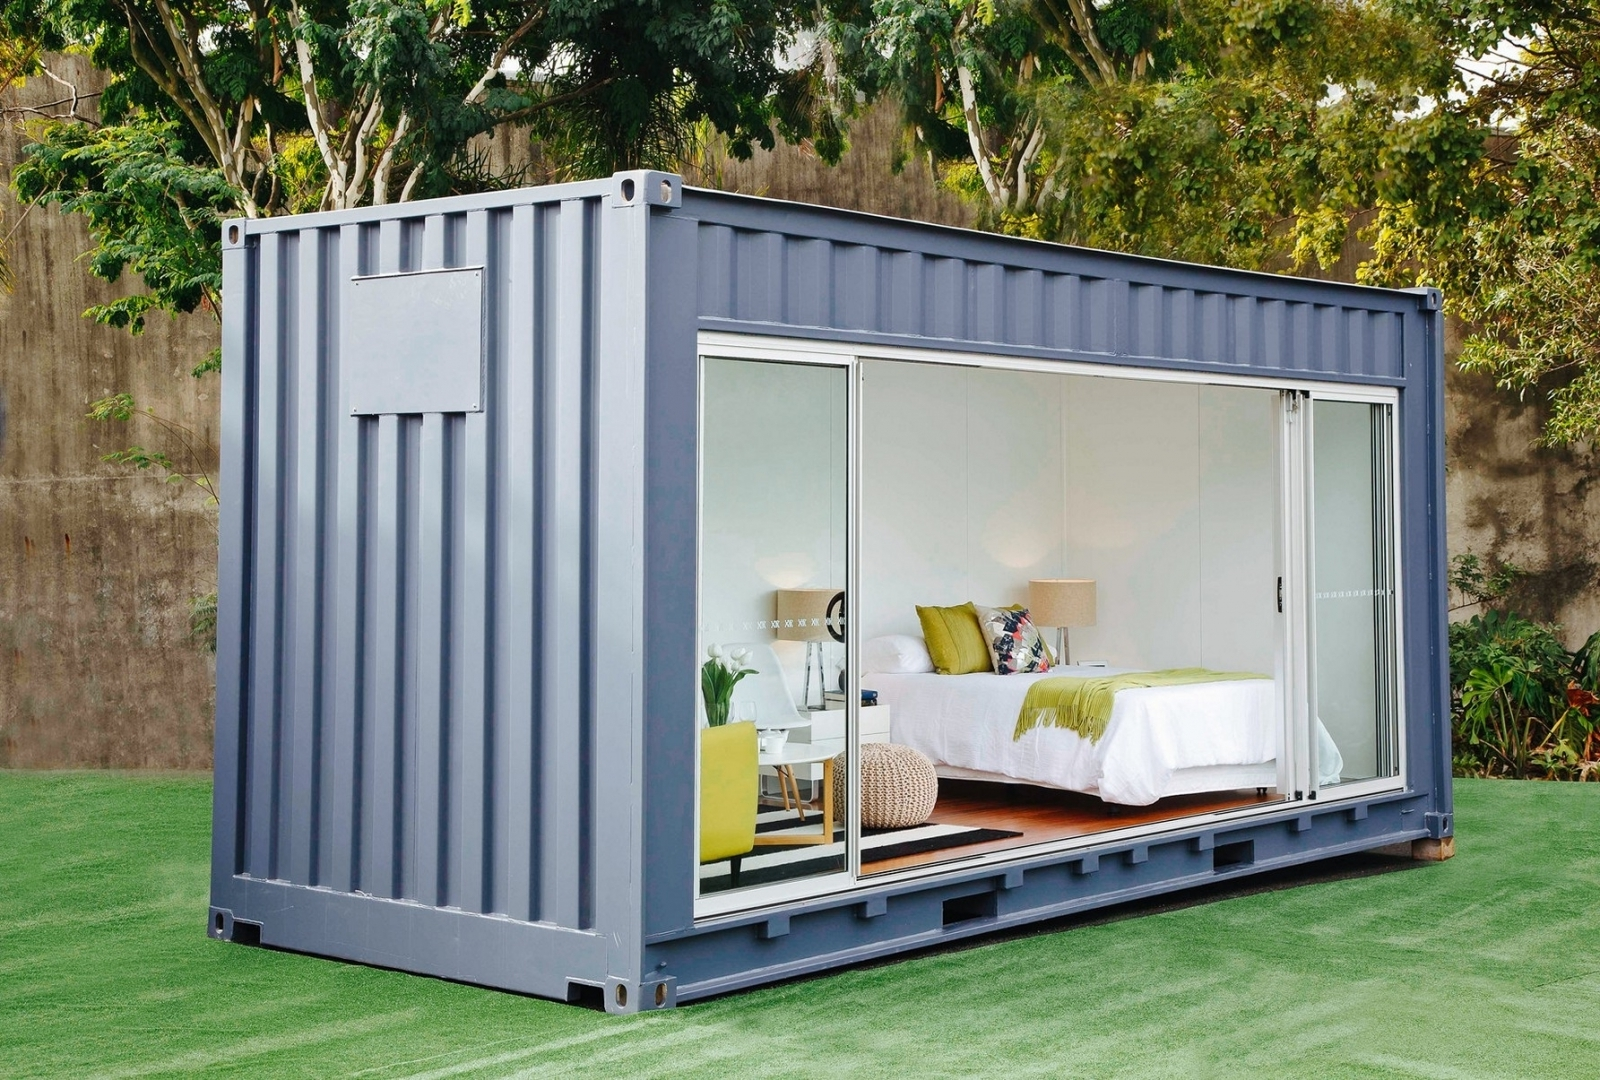 Prefab Shipping Container Homes For Your Next Home inside inside storage container homes Design